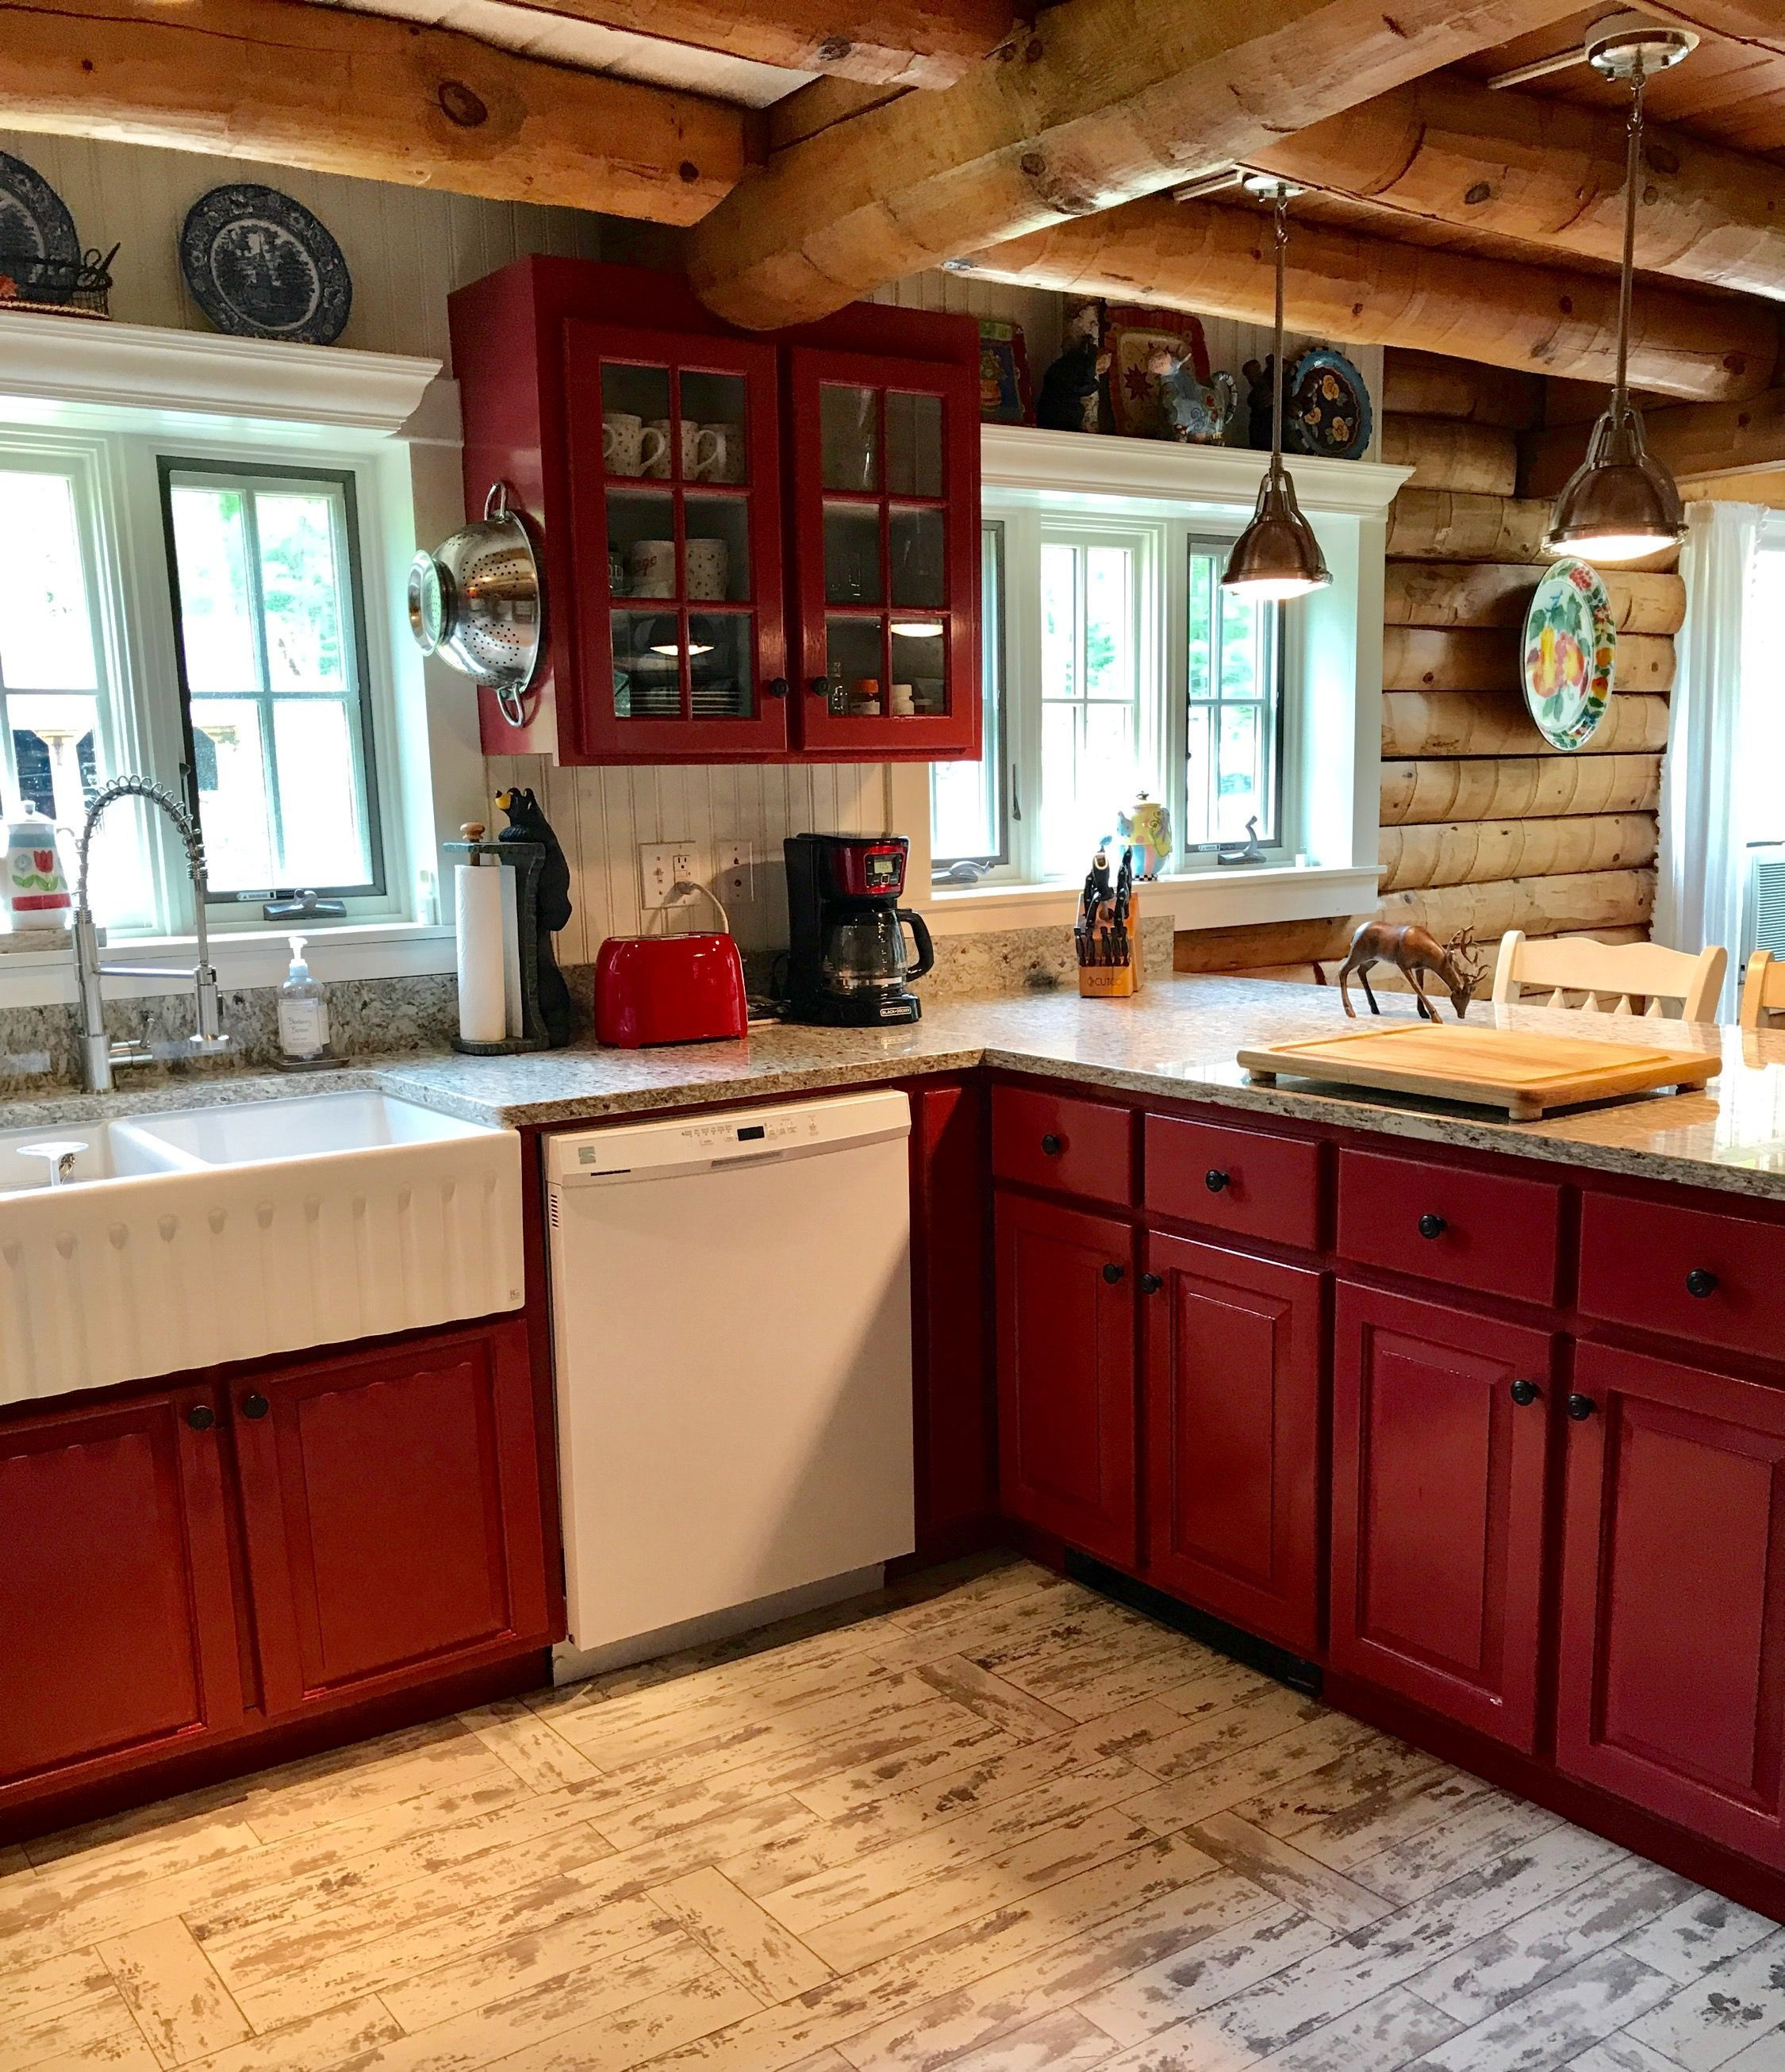 55 Simple Rural Farmhouse Barn Wood Kitchen Ideas Decoona In 2020 Log Cabin Kitchens Cabin Kitchens Log Home Kitchens